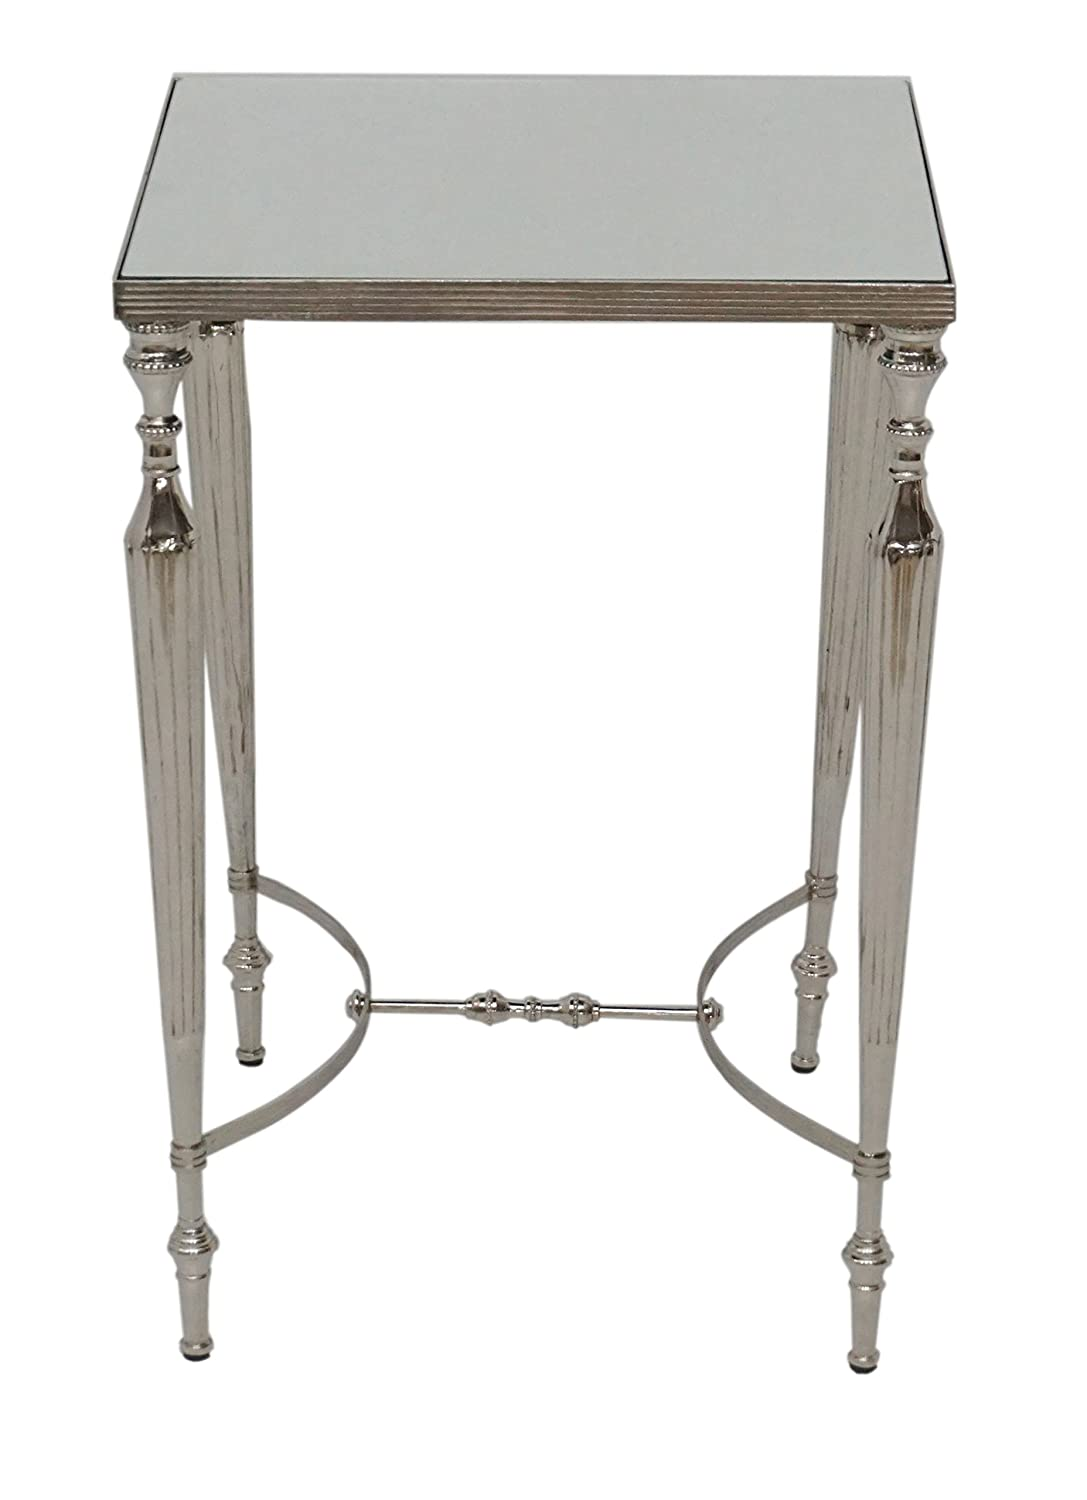 Designe Gallerie DG-38361/16383 Como Cakra Square Accent Side End Table with Mirrored Top, Aluminum, Smaller Spaces, Living Room, Bedroom, Contemporary- Nickel Plating